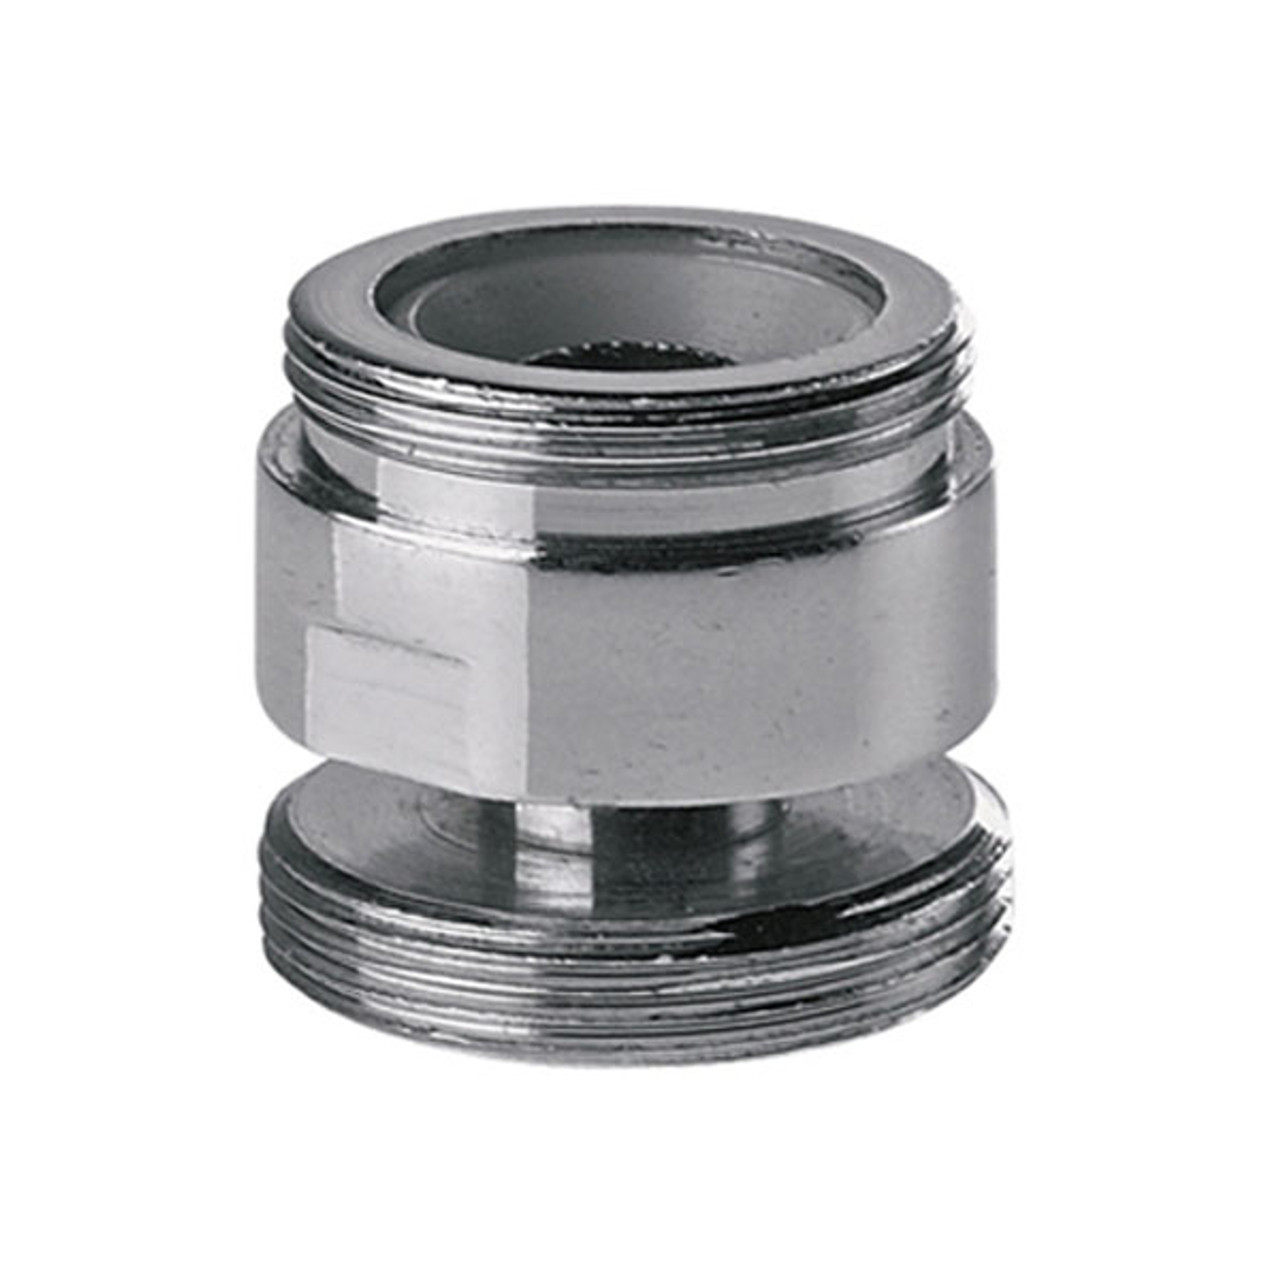 Awesome 22X24Mm Male Swivel Adaptor Metal For Water Kitchen Faucet Tap Aerator Home Interior And Landscaping Ologienasavecom